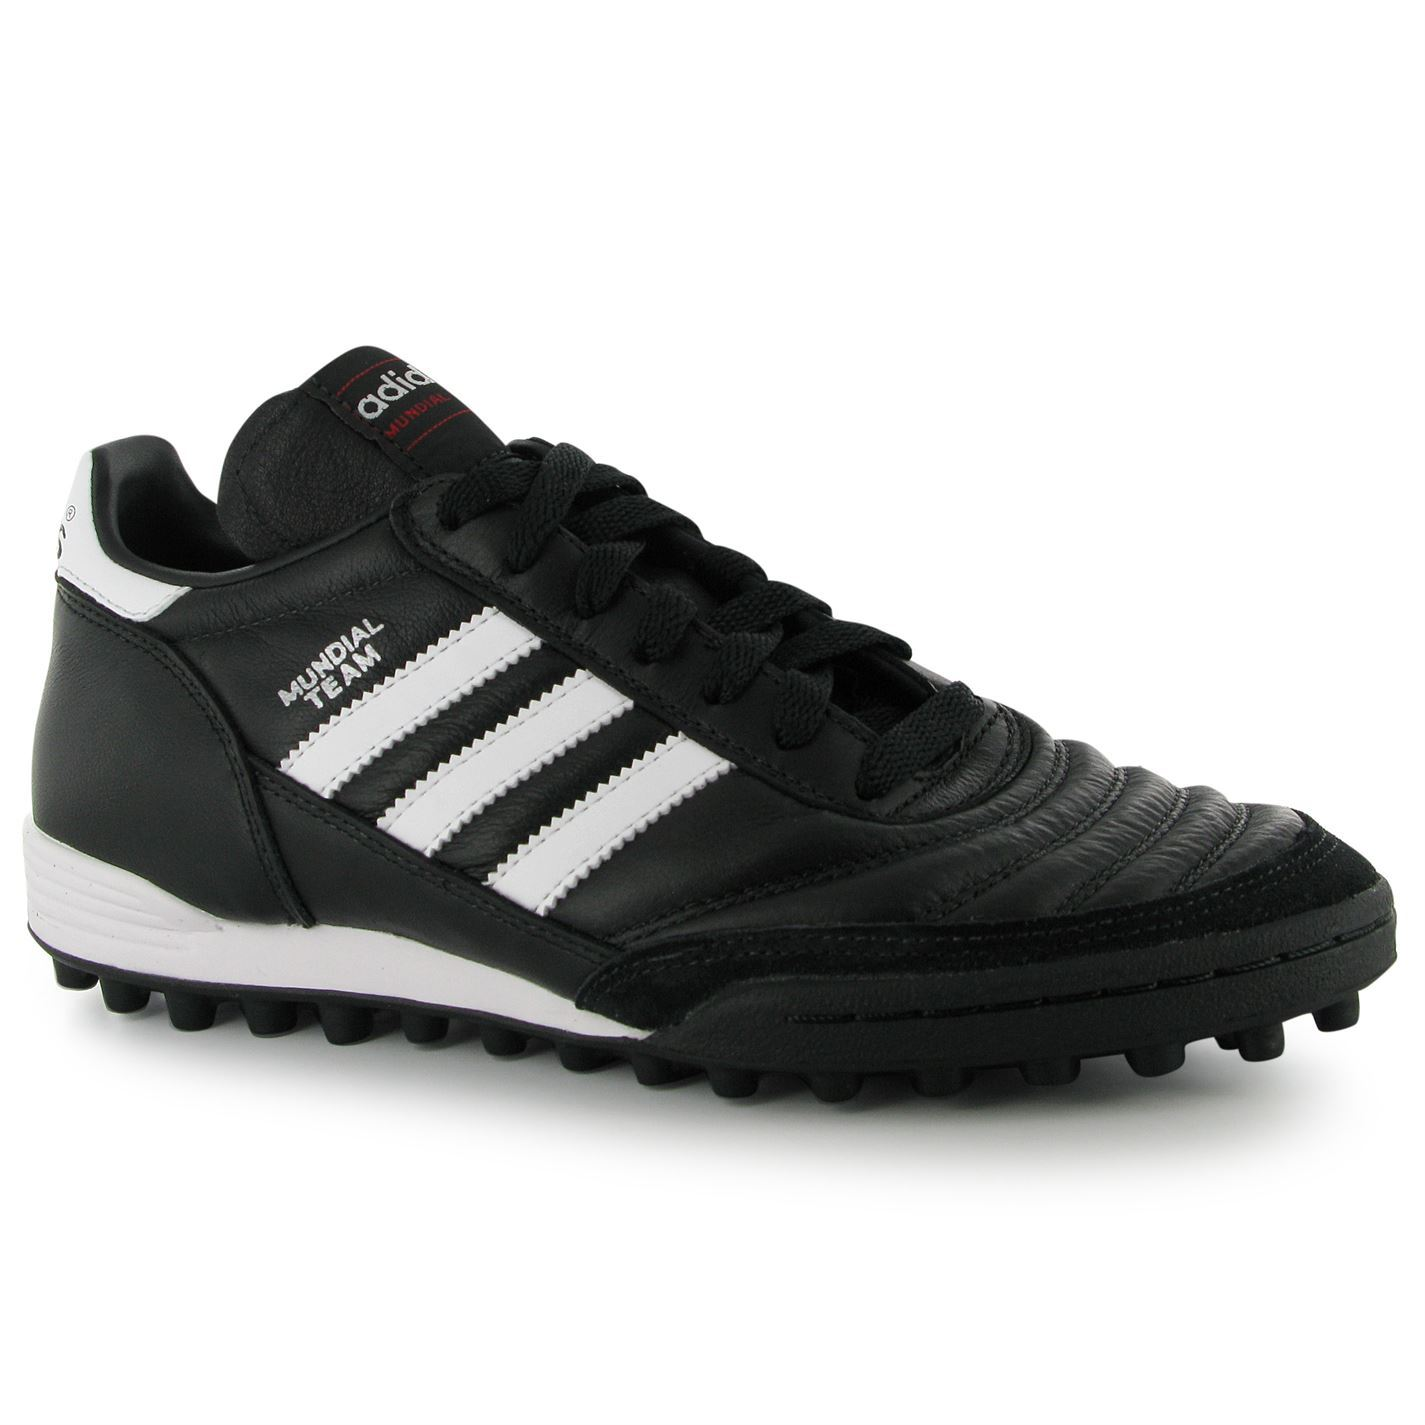 Details about Adidas Mundial Team Mens Astro Turf Trainer Blk/Wht Football  Soccer Boots